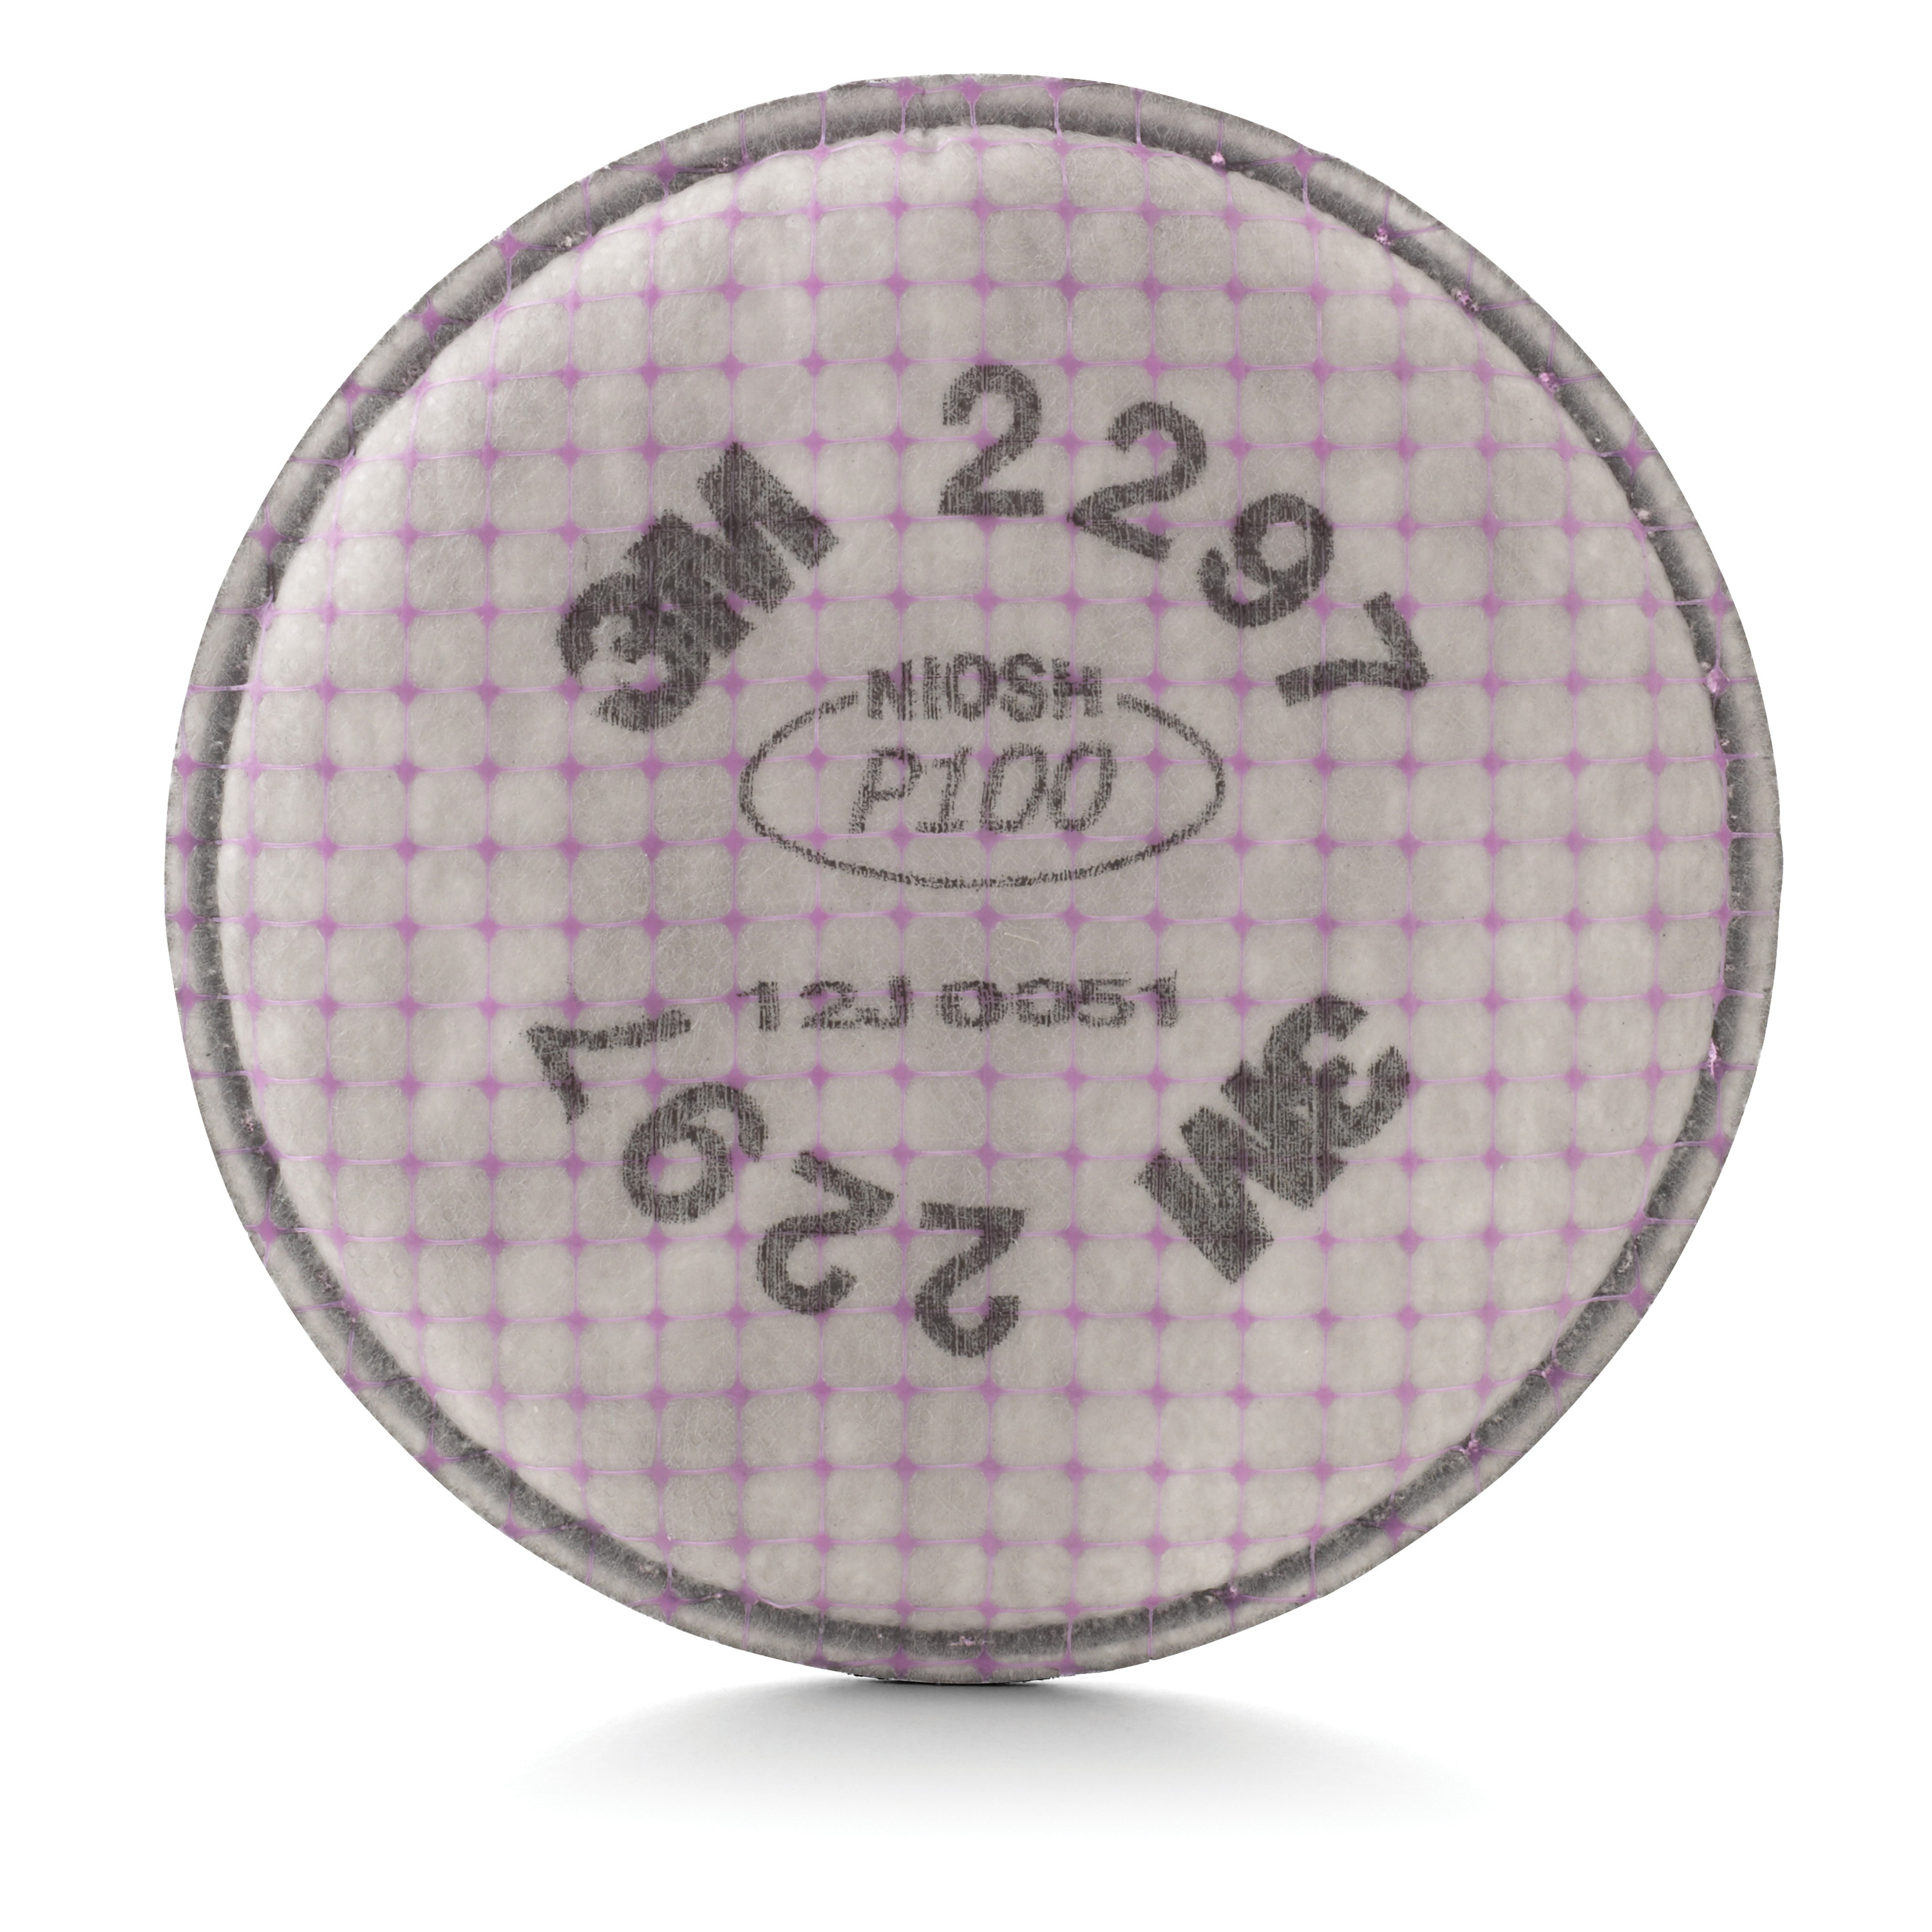 3M™ 2296 Advanced Particulate Filter, P100, Bayonet Connection, Magenta -- DUE TO HIGH DEMAND, we may be unable to fulfill any orders for this product regardless of stock status indicated.